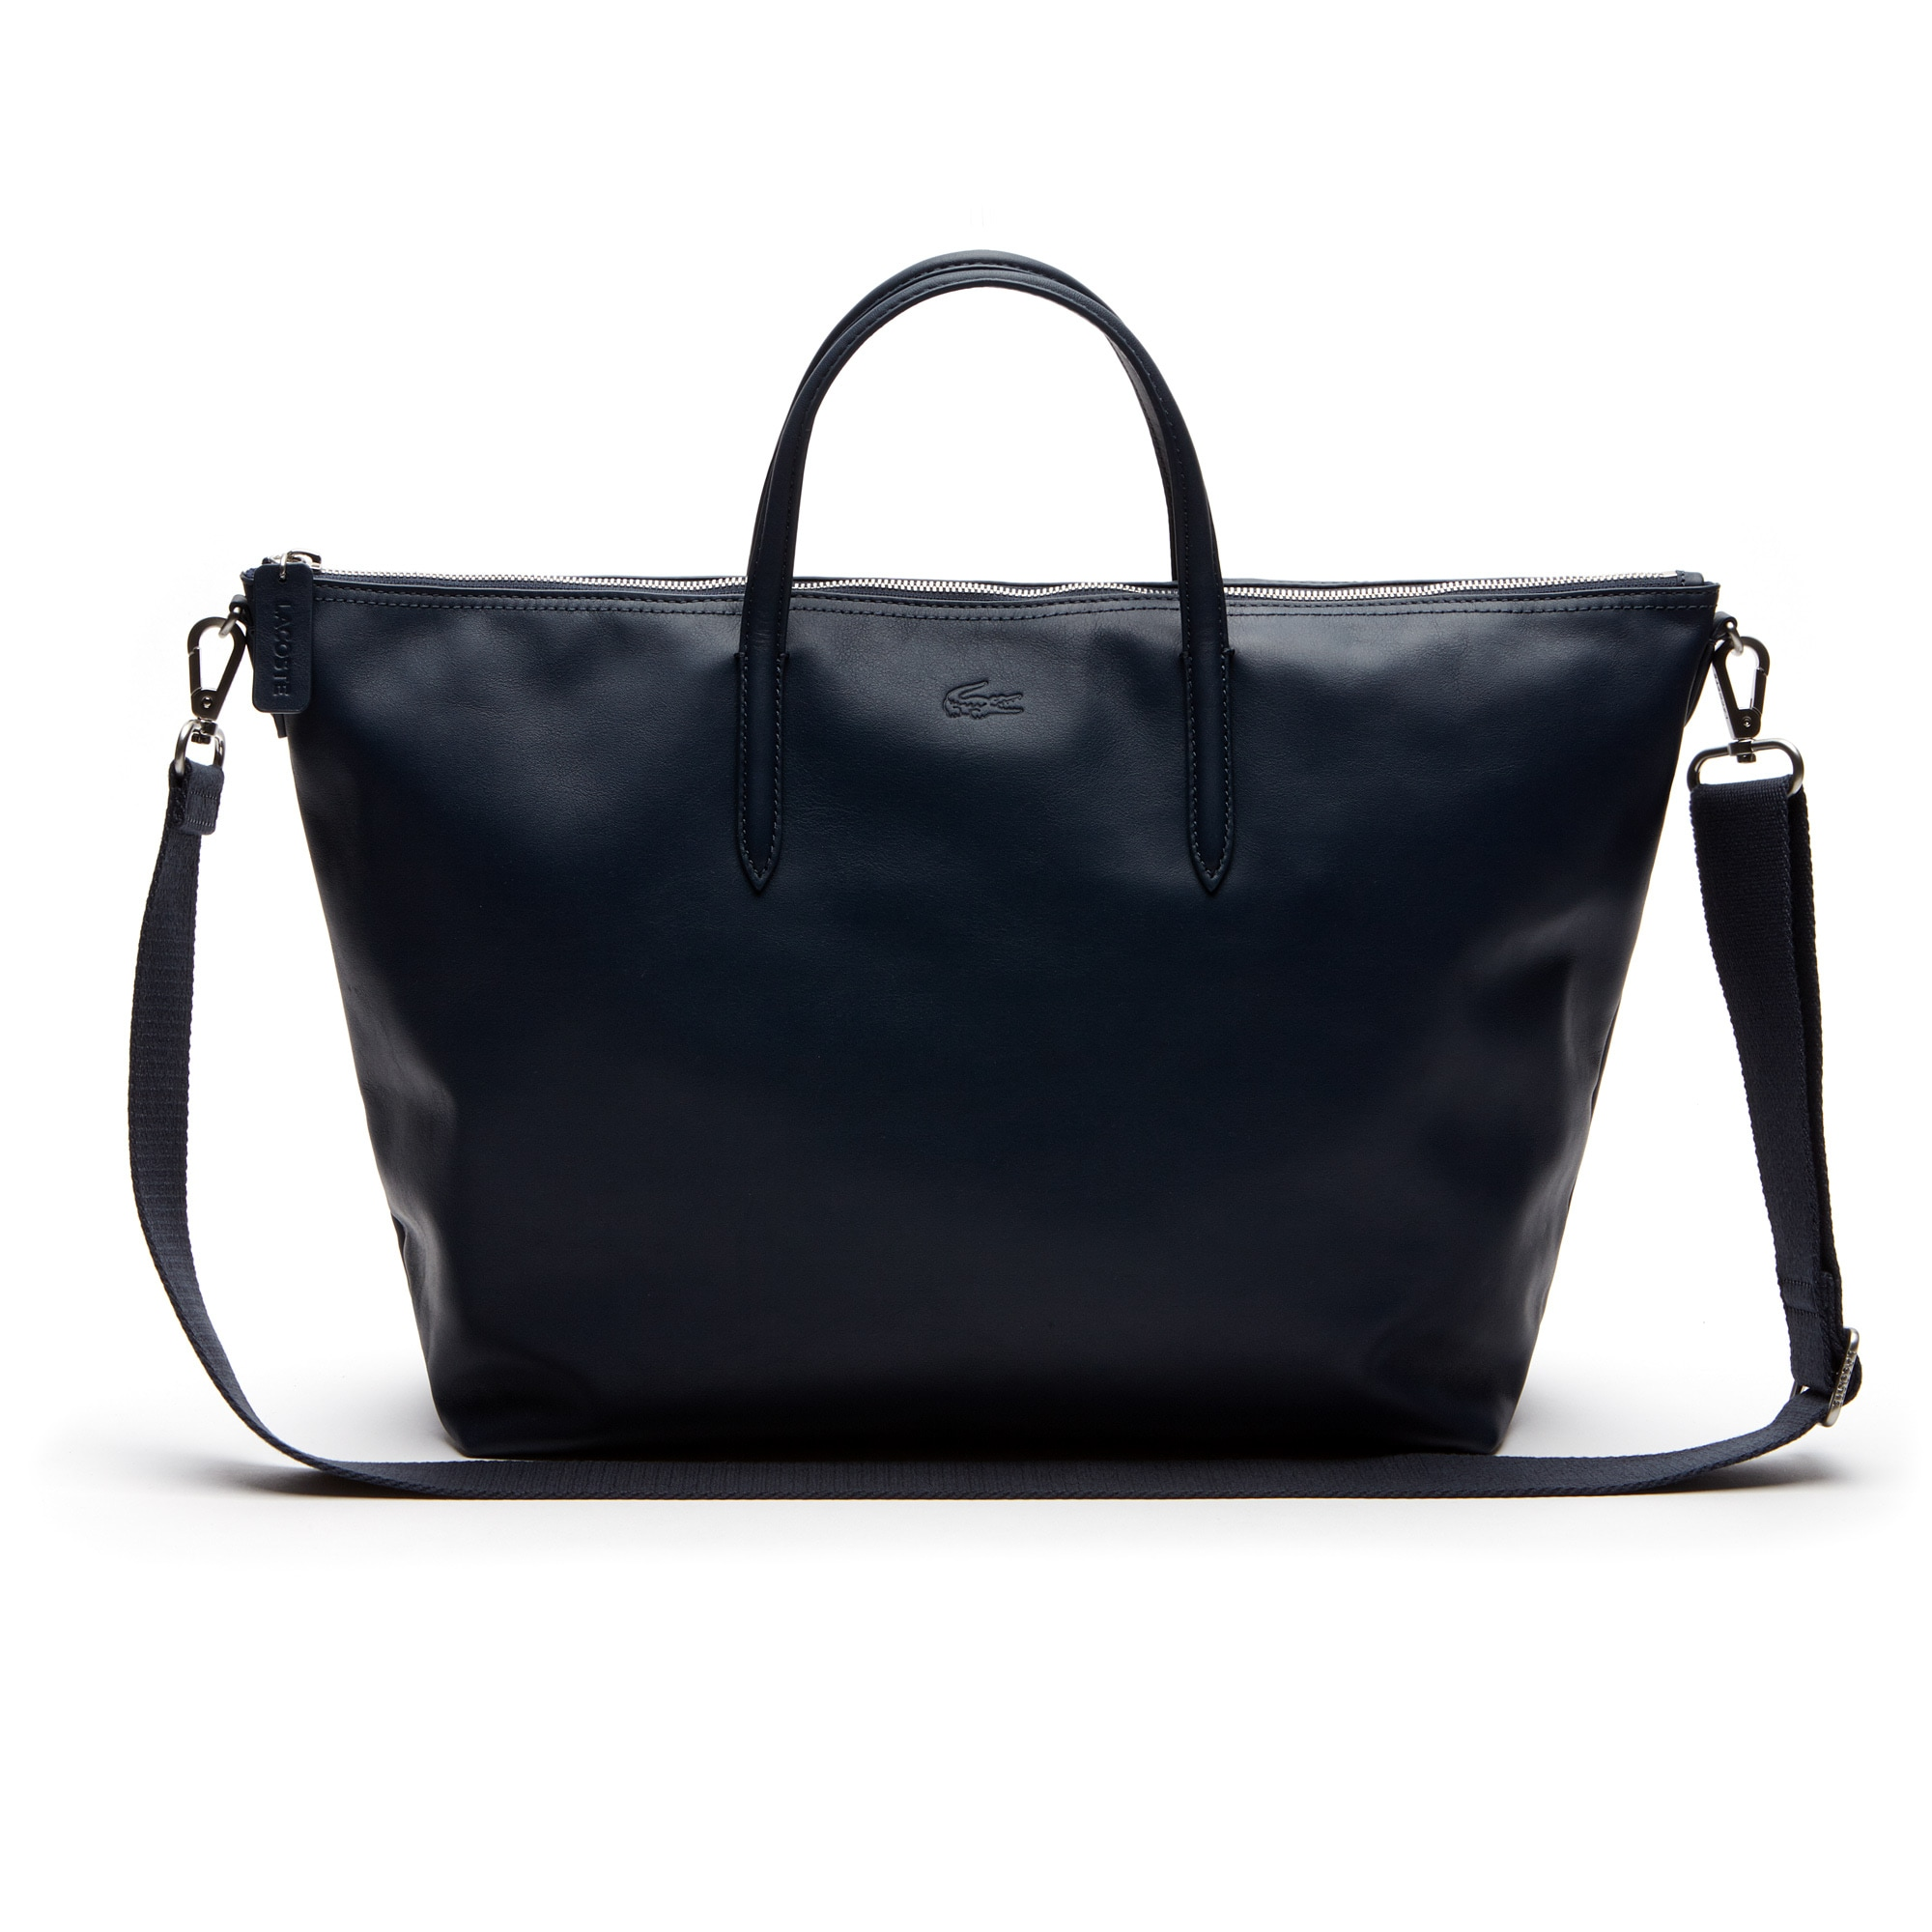 Women's L.12.12 Limited Edition 85th Anniversary Leather Tote Bag